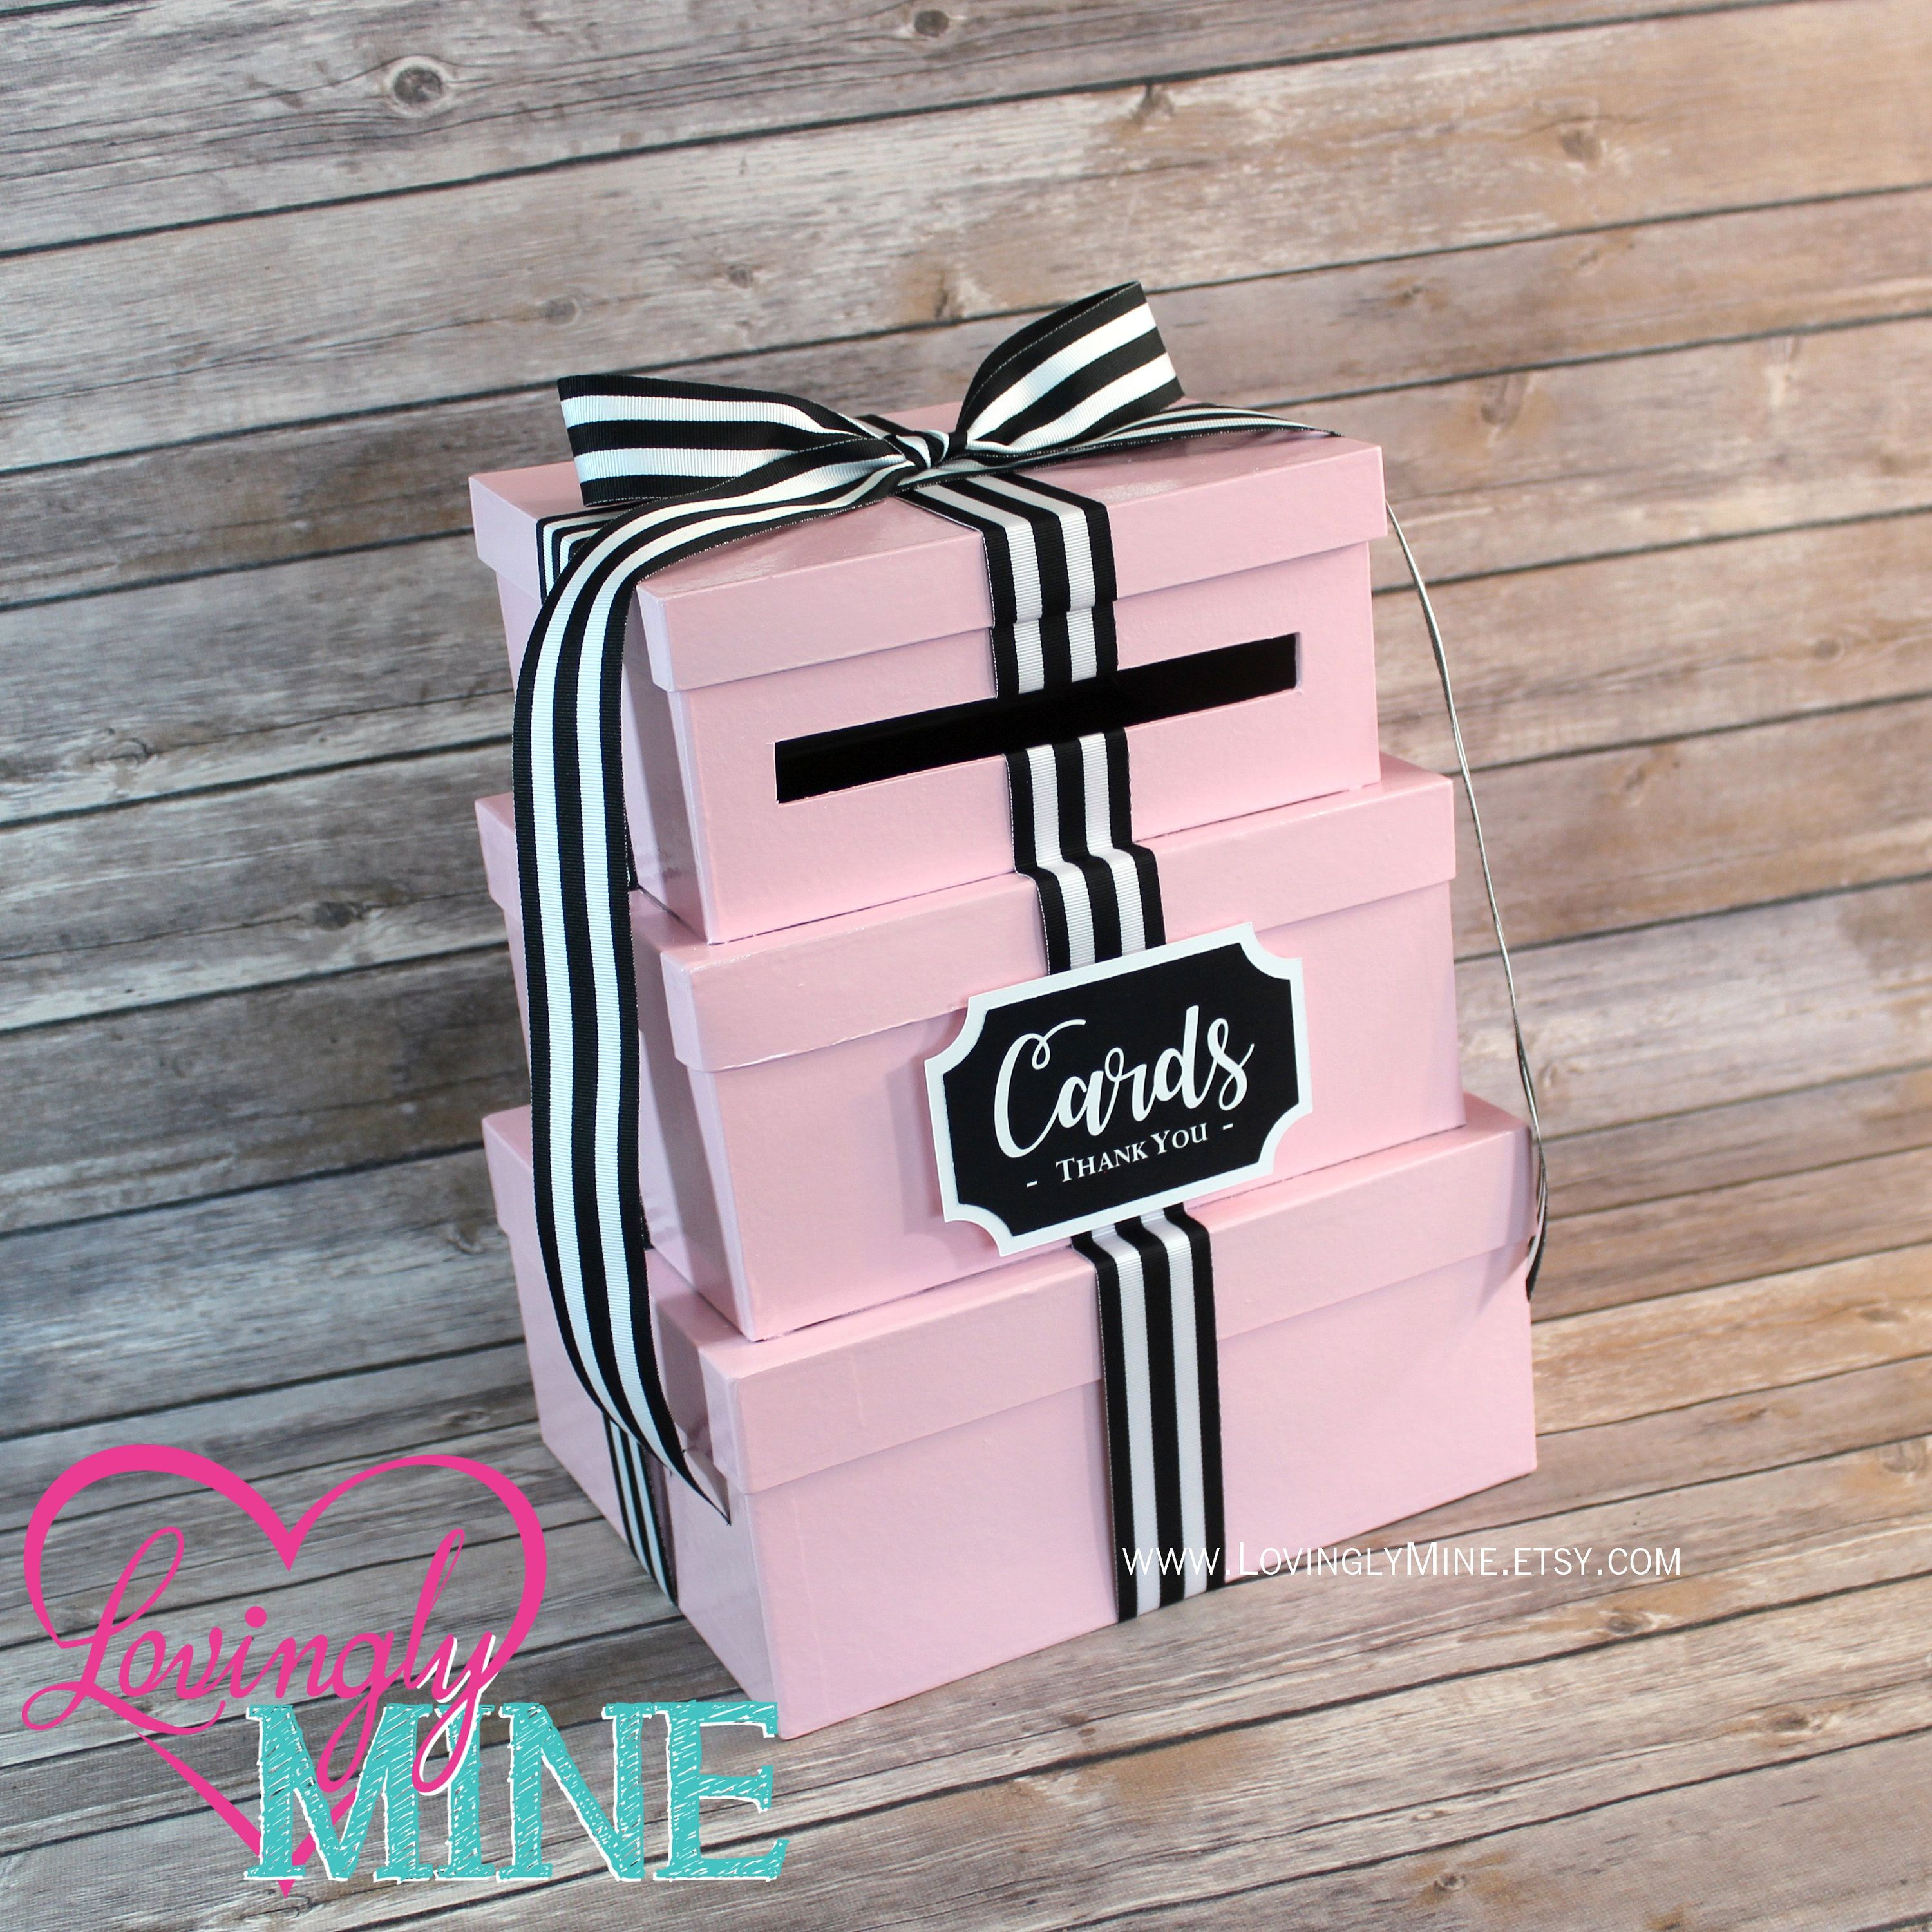 Card Holder 3 Tier Box Gift Money With Sign Baby Pink Black White Stripes Graduation Birthday Bridal Shower Sweet 16 By Lovinglymine